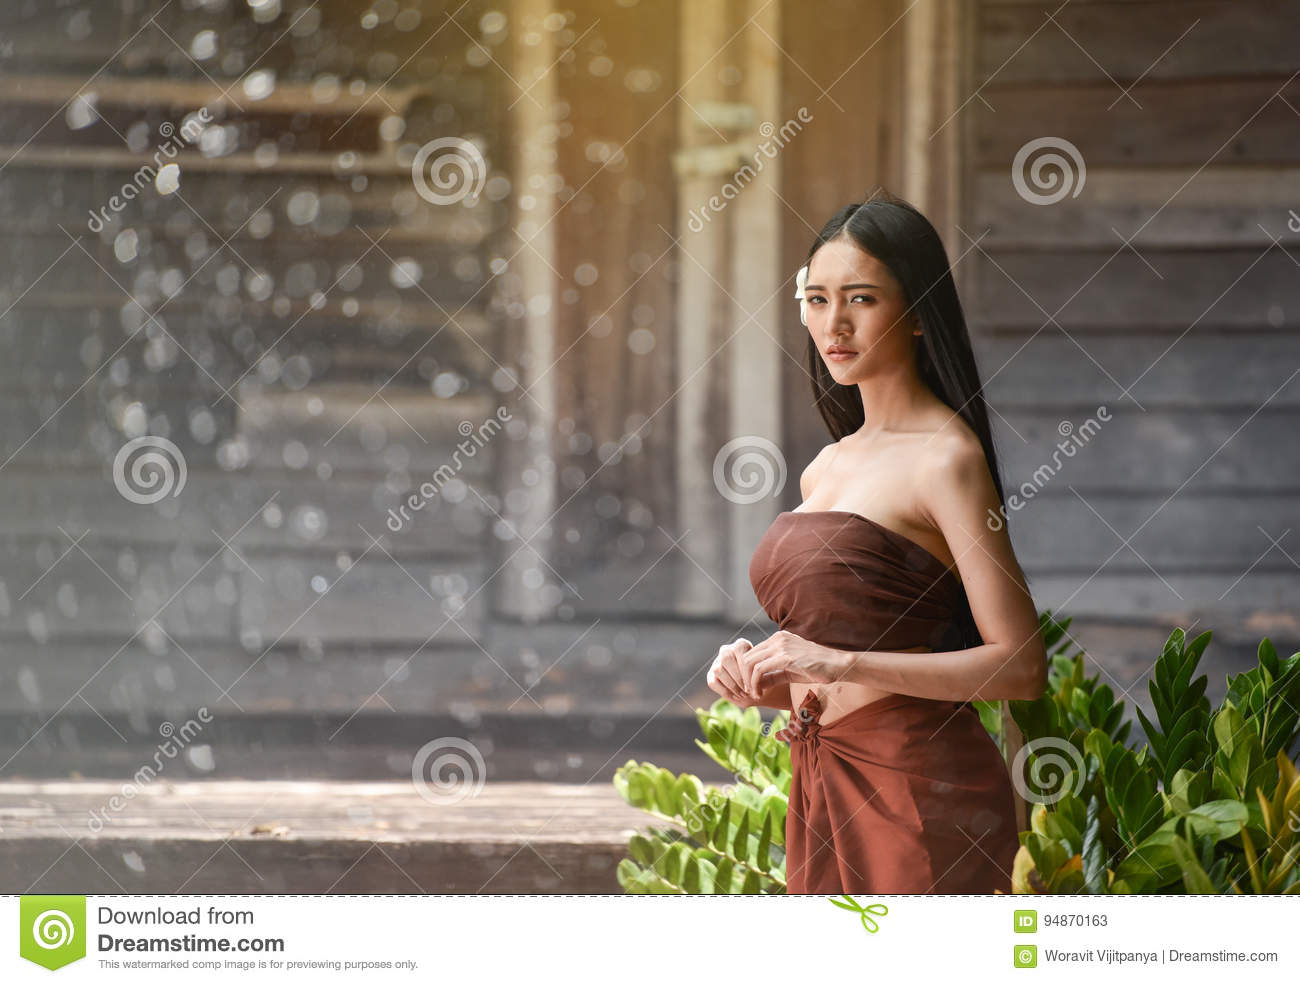 https://thumbs.dreamstime.com/z/thai-women-dress-style-thai-beautiful-woman-traditional-historical-period-wooden-house-94870163.jpg